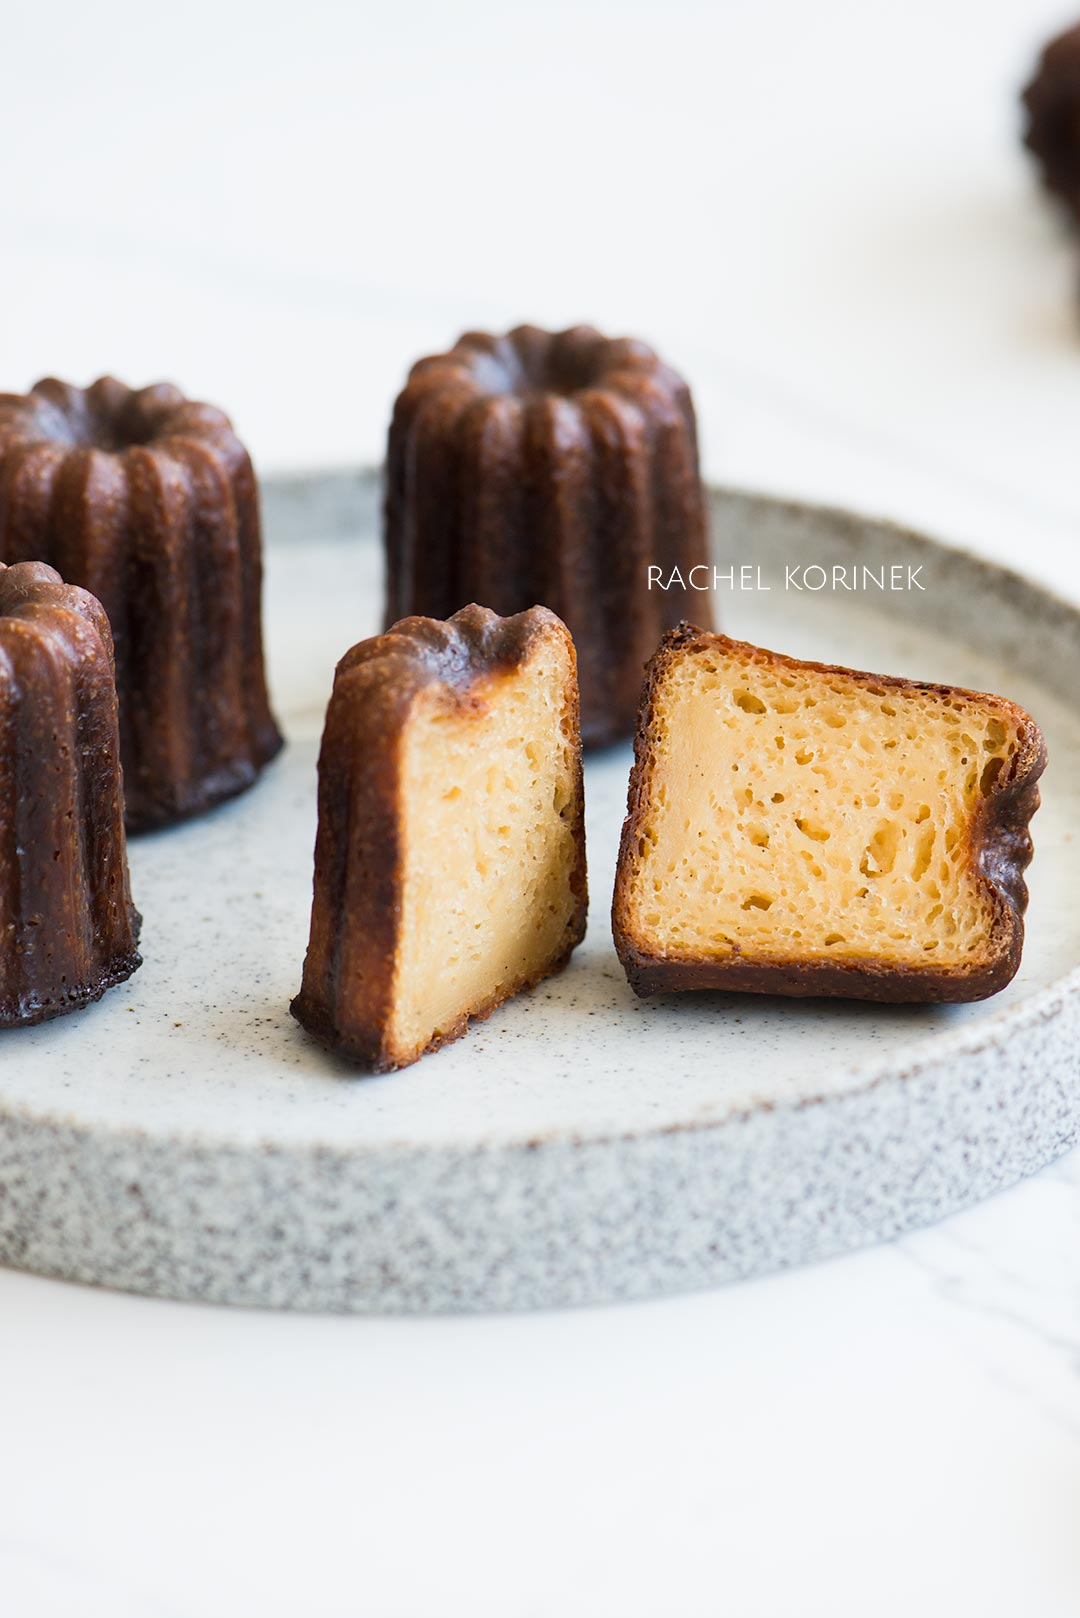 Rachel Korinek Food Photographer | caneles with floot melbourne  Click to check out my latest food photography projects.  #twolovesstudio #beautifulcuisine #foodbloggerpro #foodphotography #learnfoodphotography #foodblogger #learnphotography #foodstyling #lightingtips #naturallight #foodphotographer